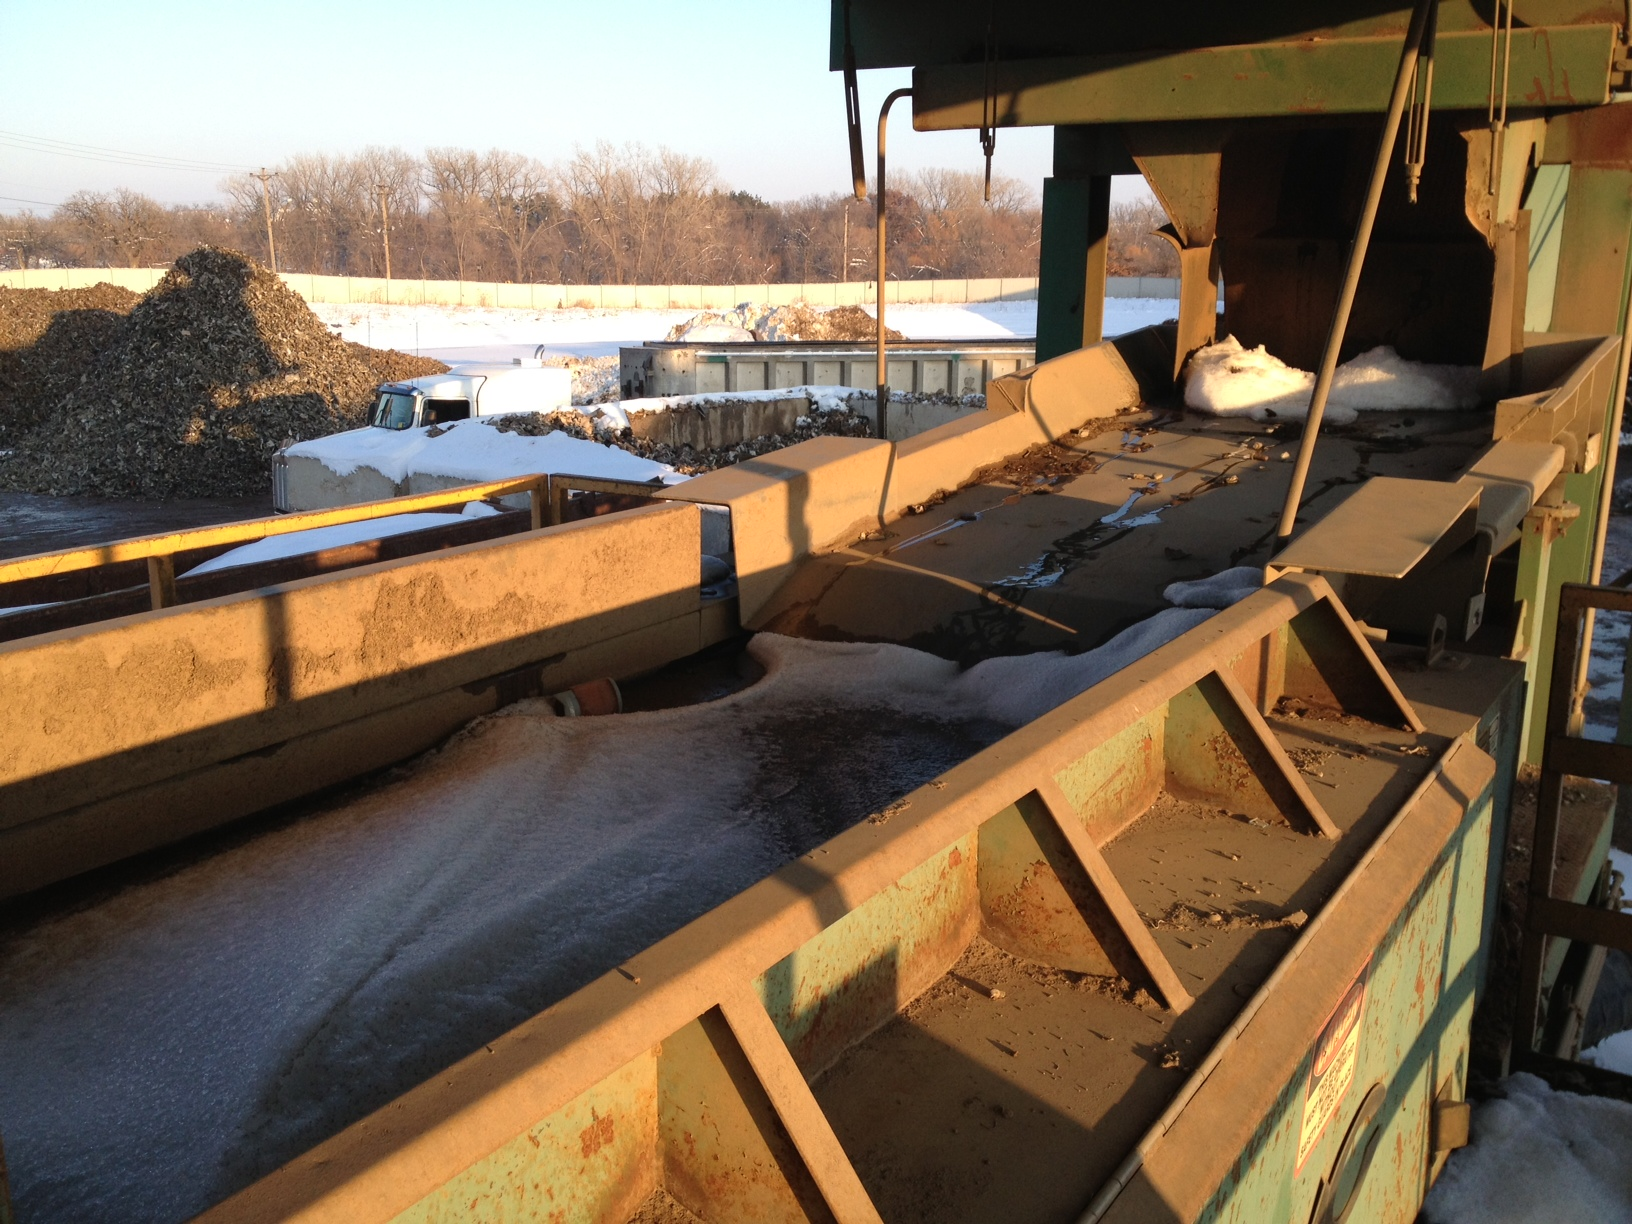 Wendt Used Trommel Amp Nf System With Conveyors And 40 Quot Eddy